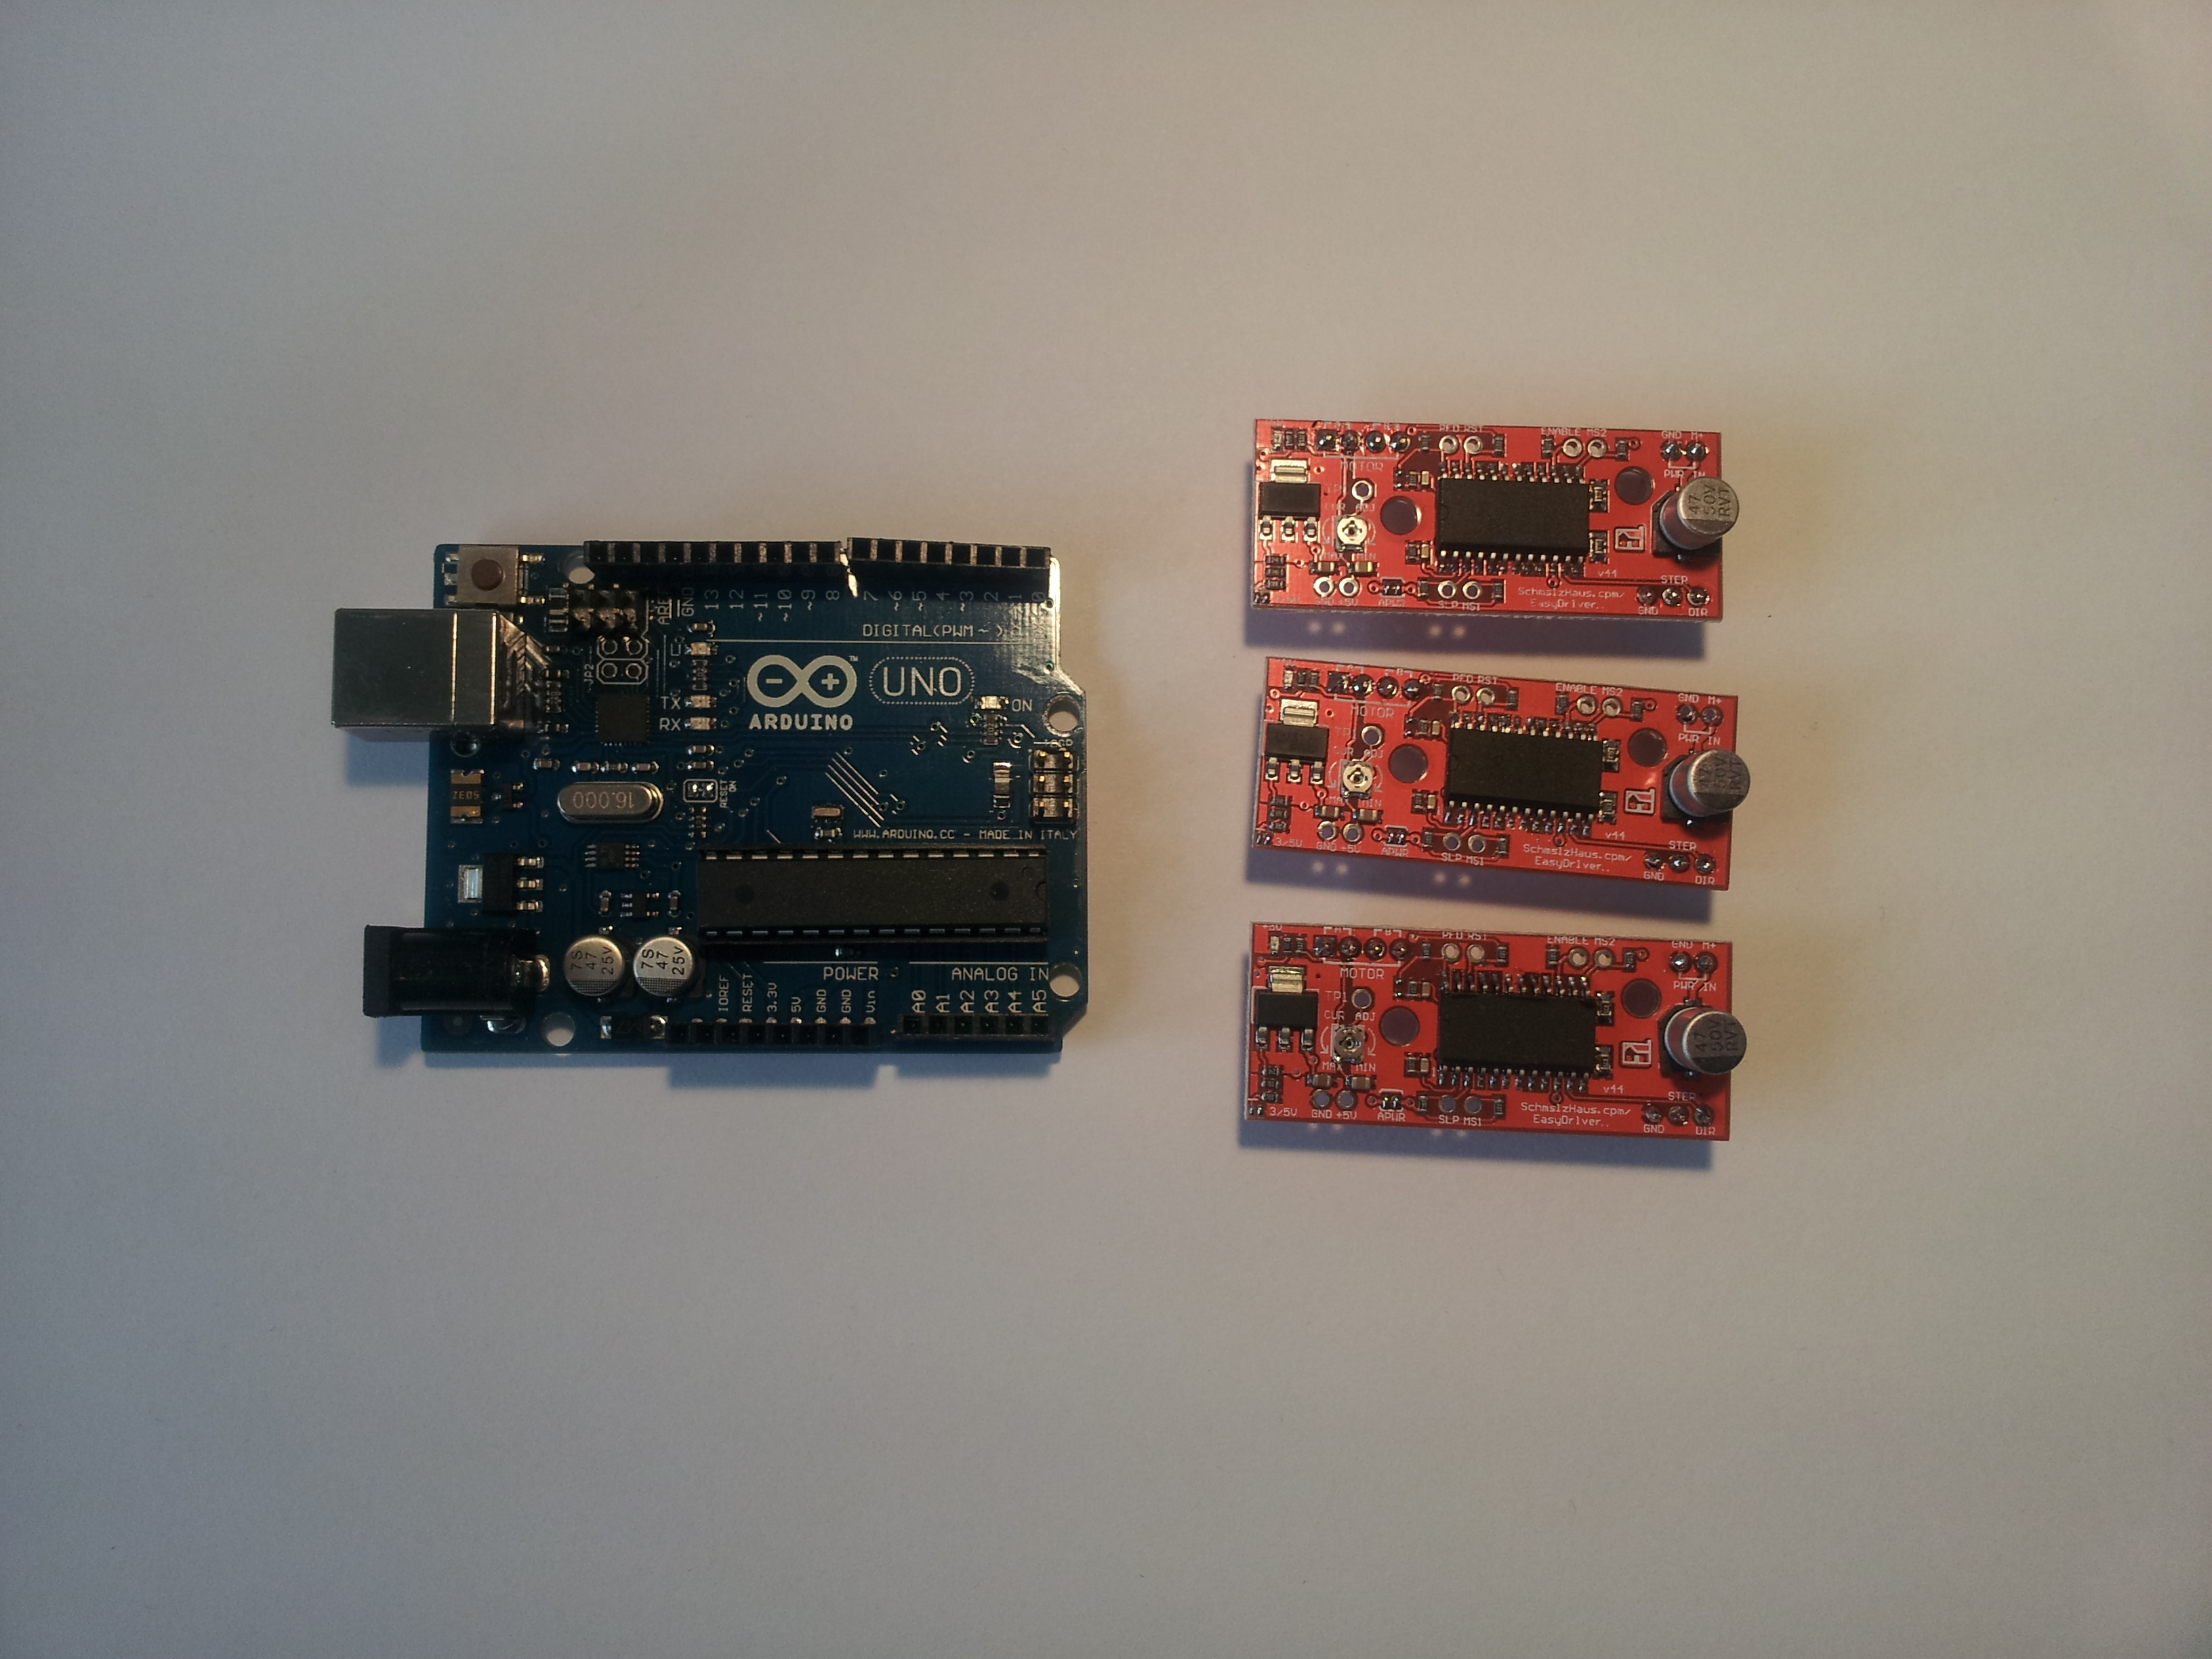 Picture of Attaching the Easydrivers and the Arduino